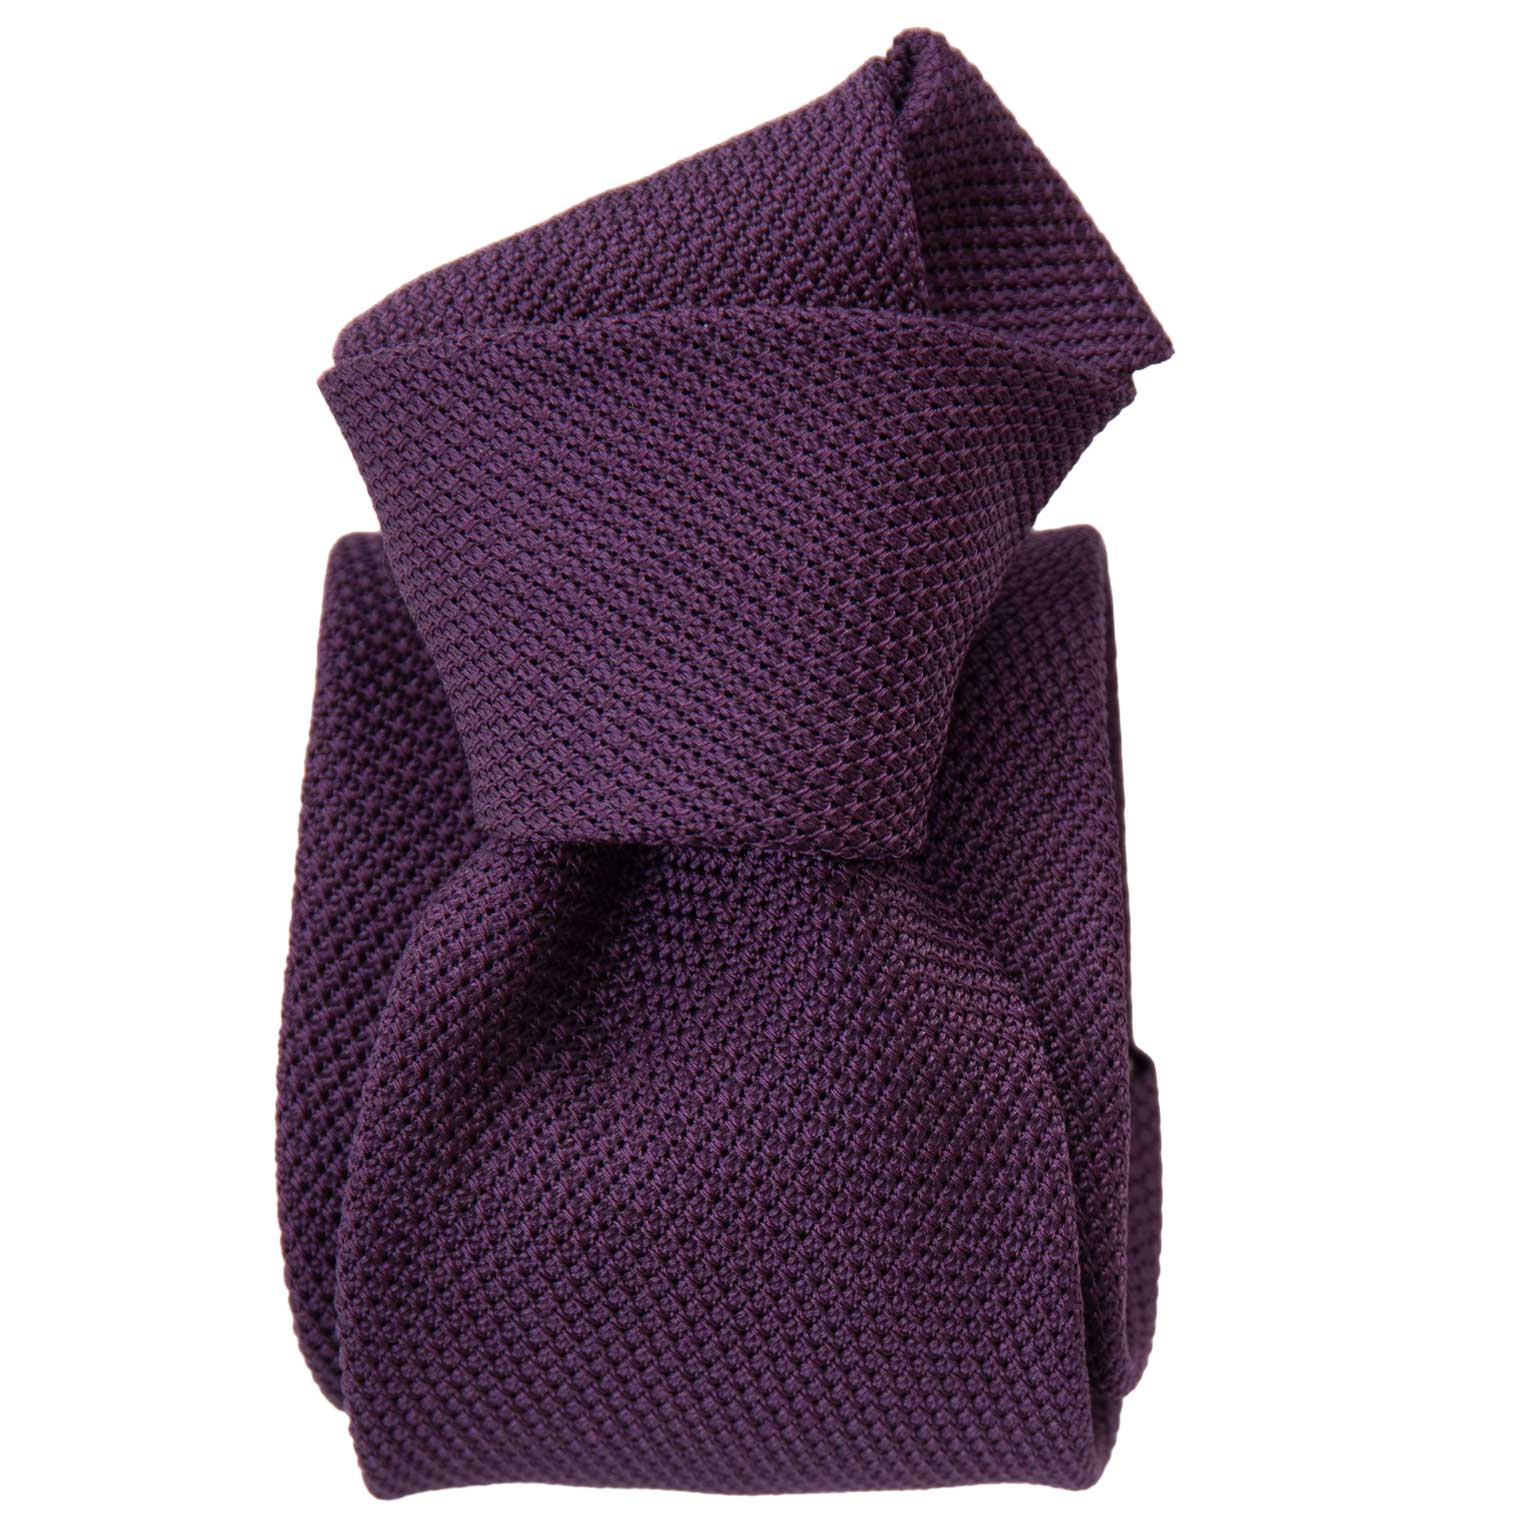 Purple Grenadine Tie - Garza Fina - Made in Italy